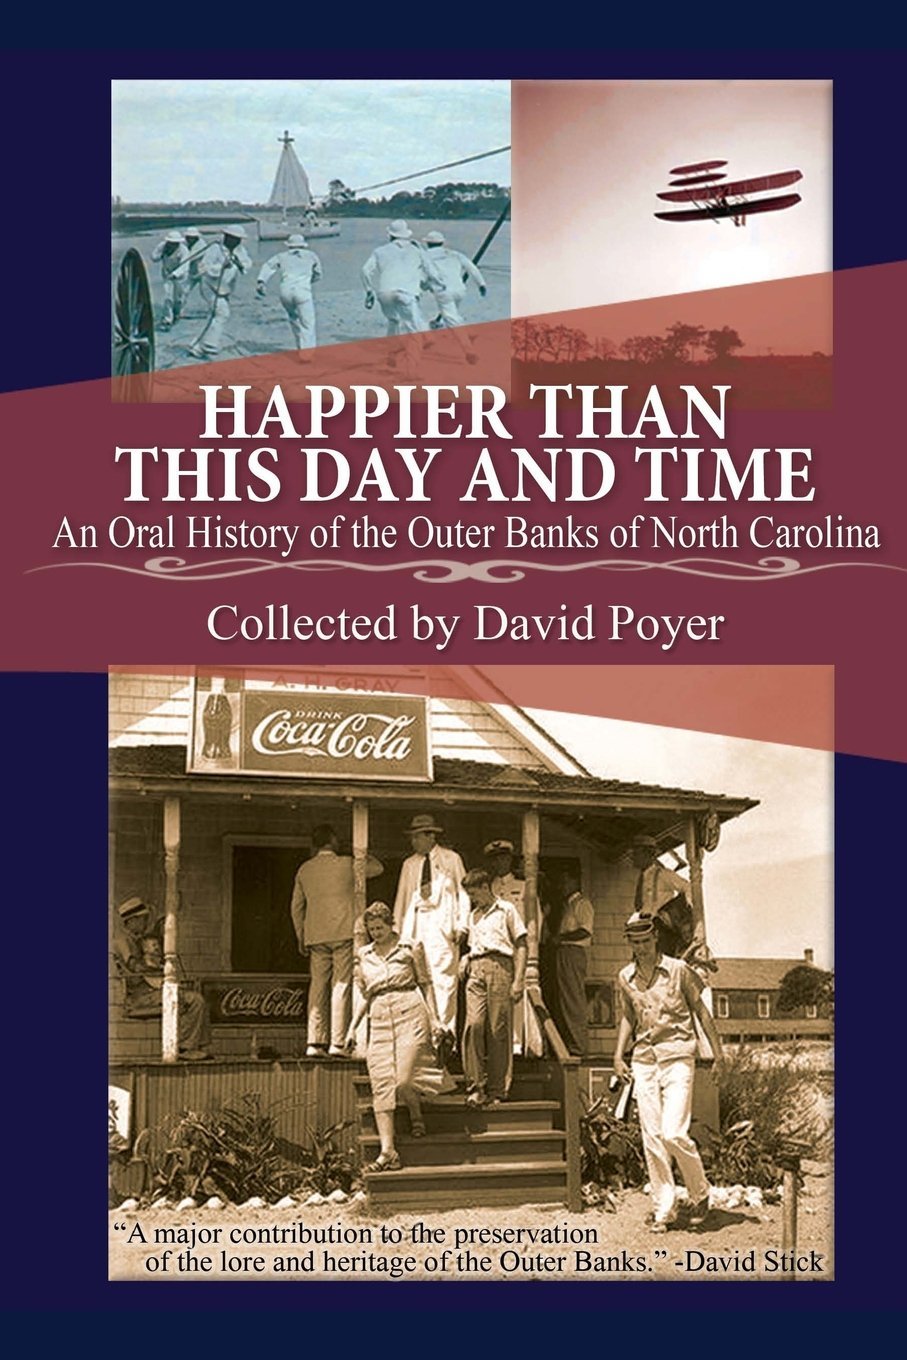 Download Happier Than This Day And Time: An Oral History of the Outer Banks of North Carolina pdf epub